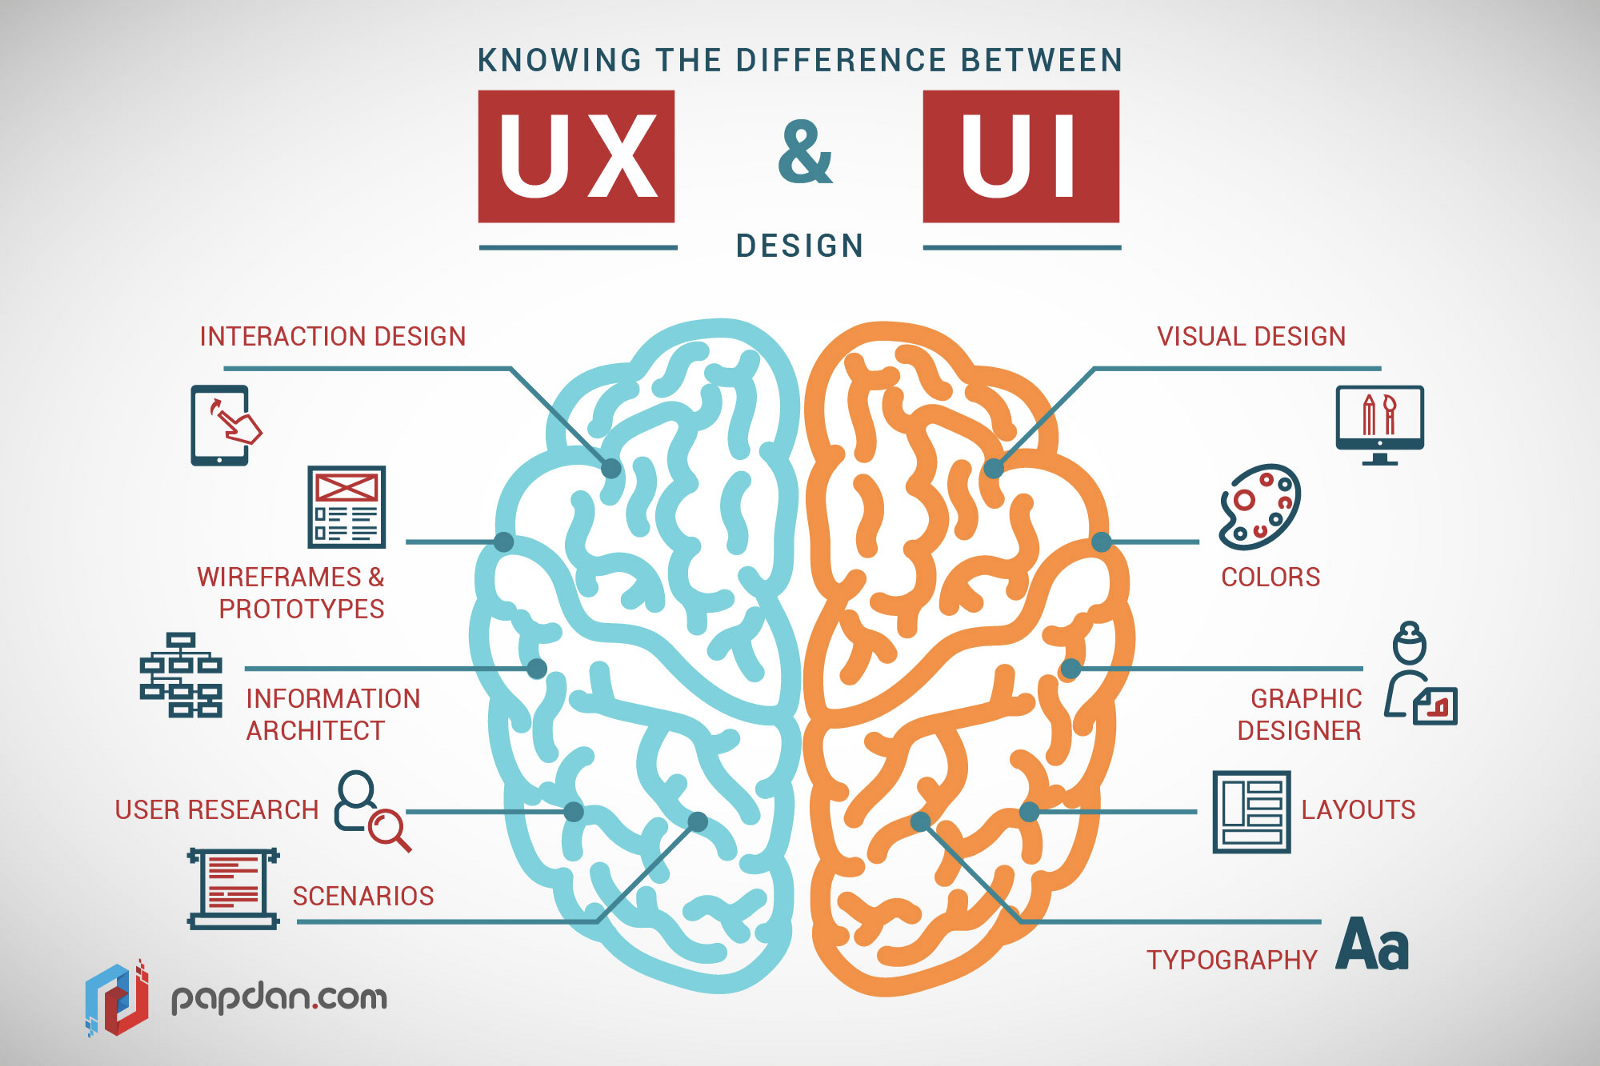 UX Design is not UI Design — this is not what we should be talking about